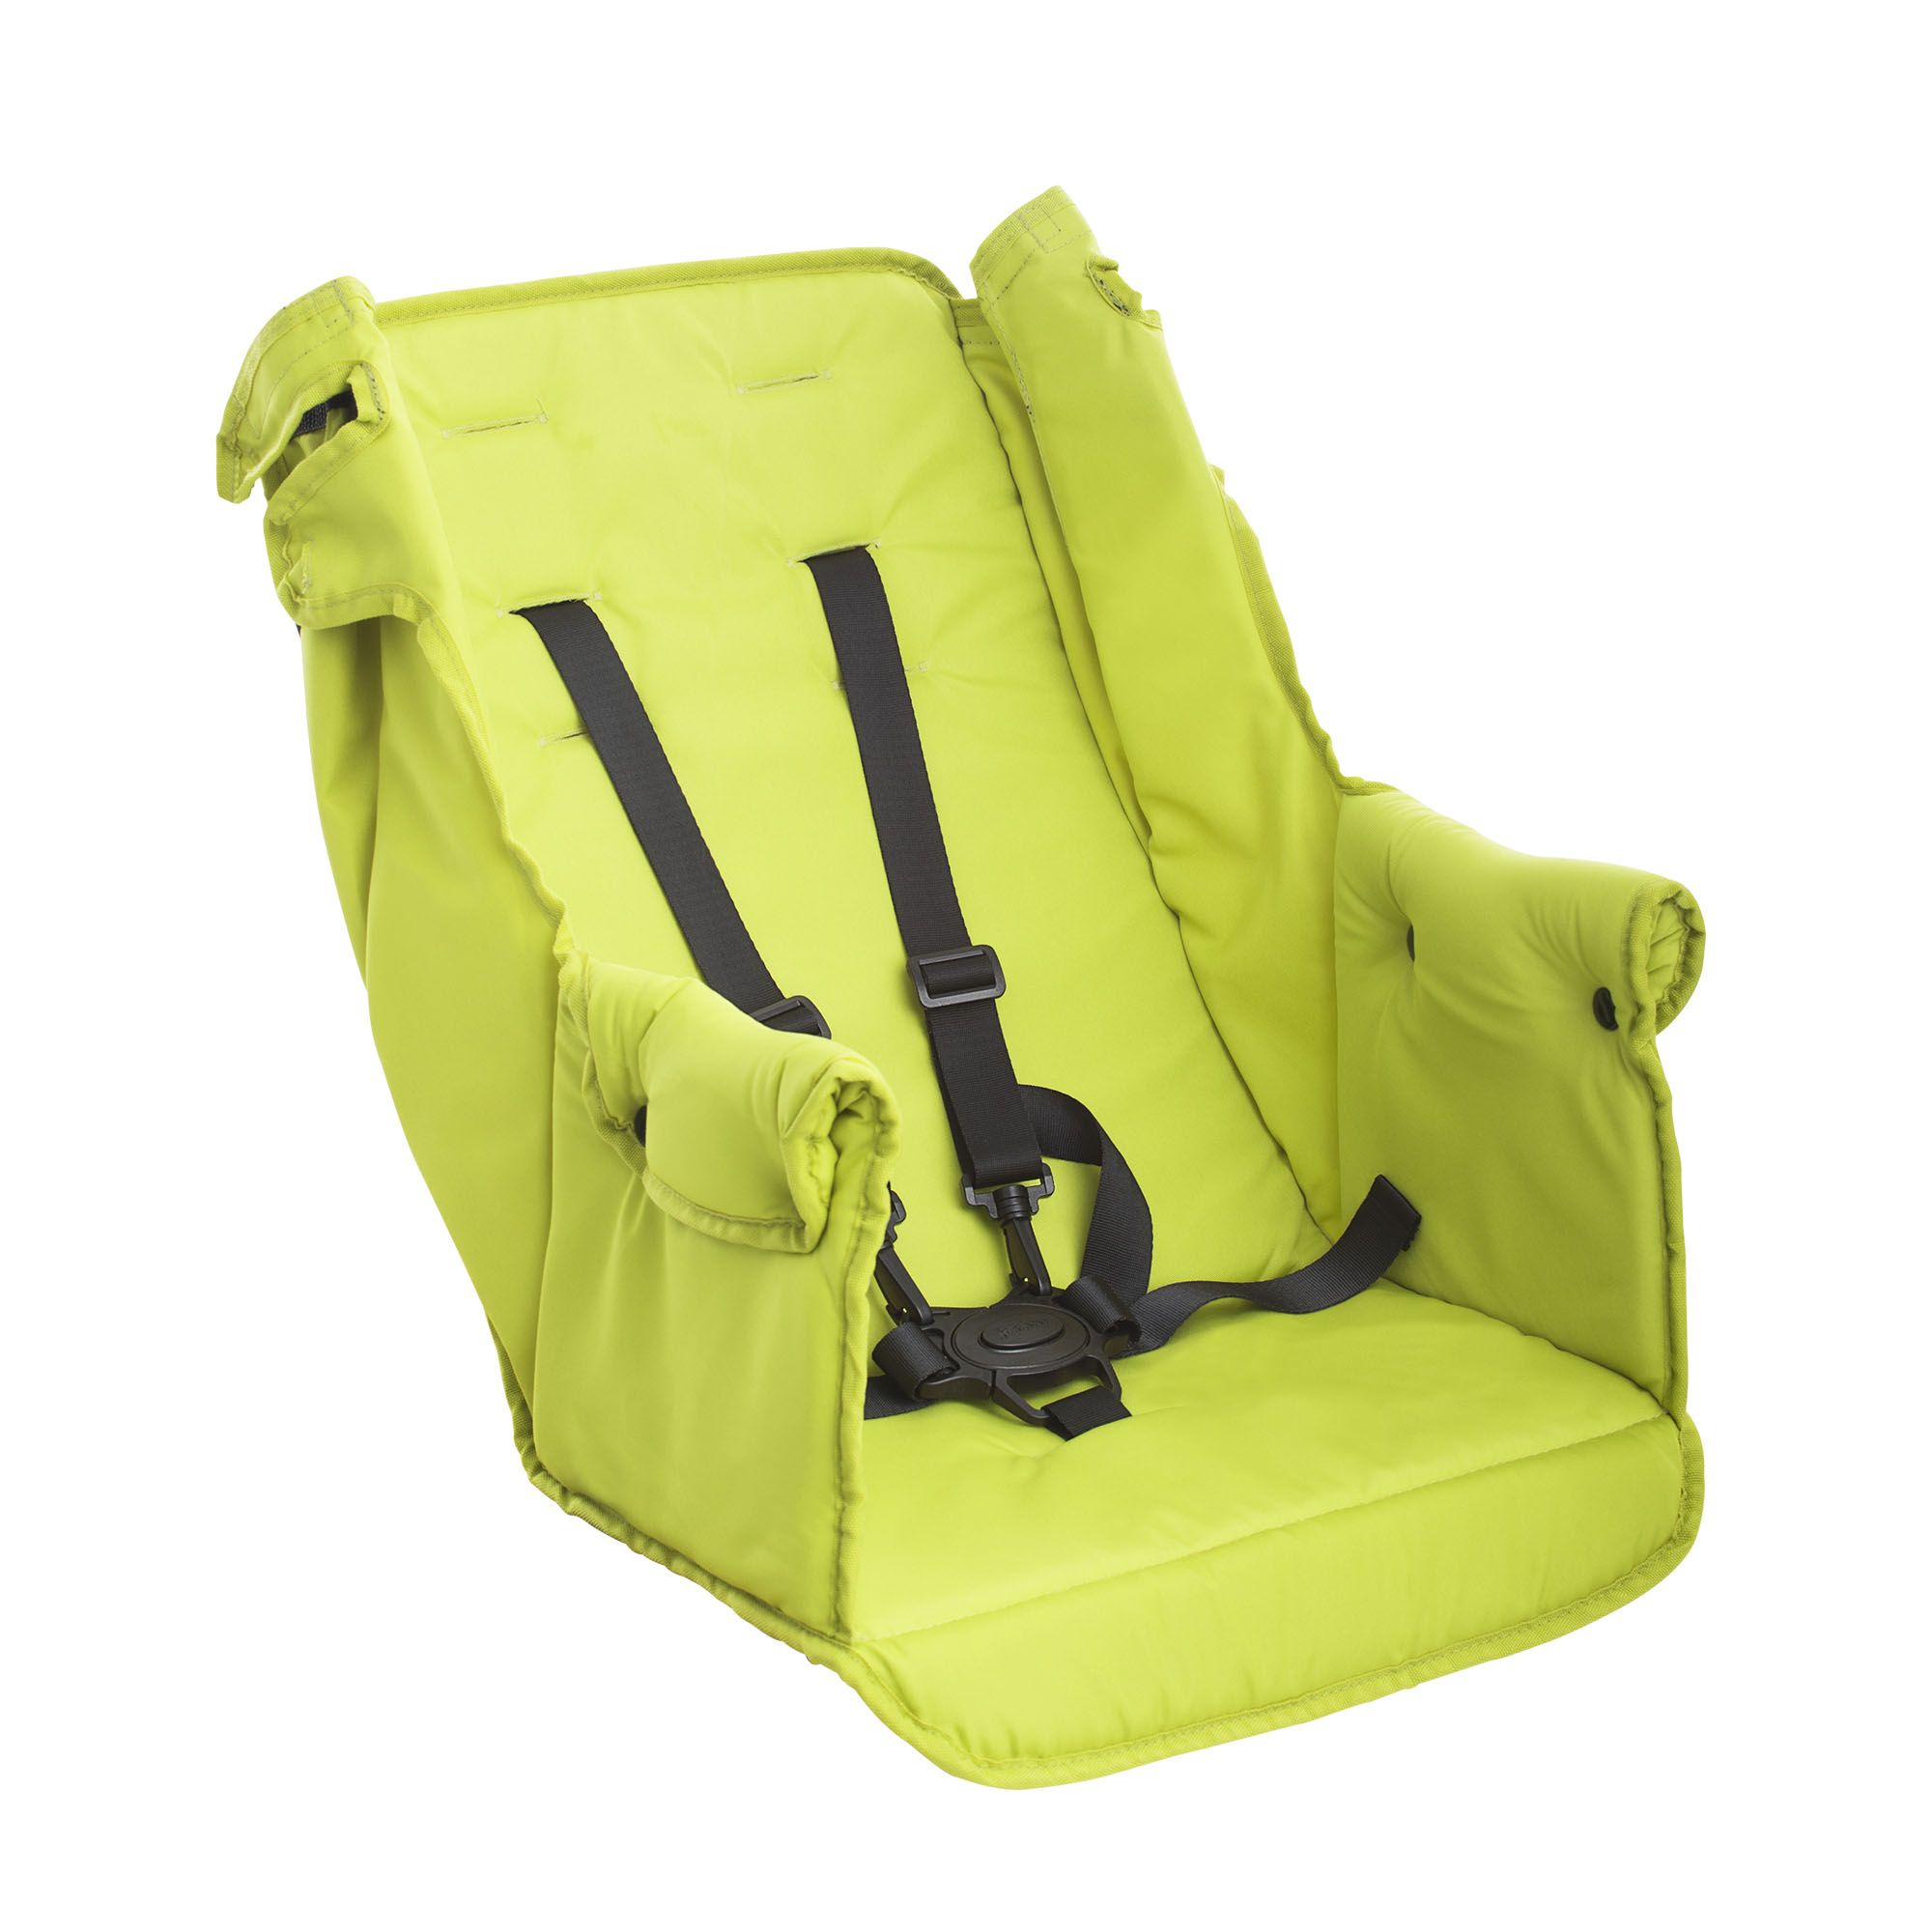 Caboose Sit and Stand Stroller Rear Seat Traveling with